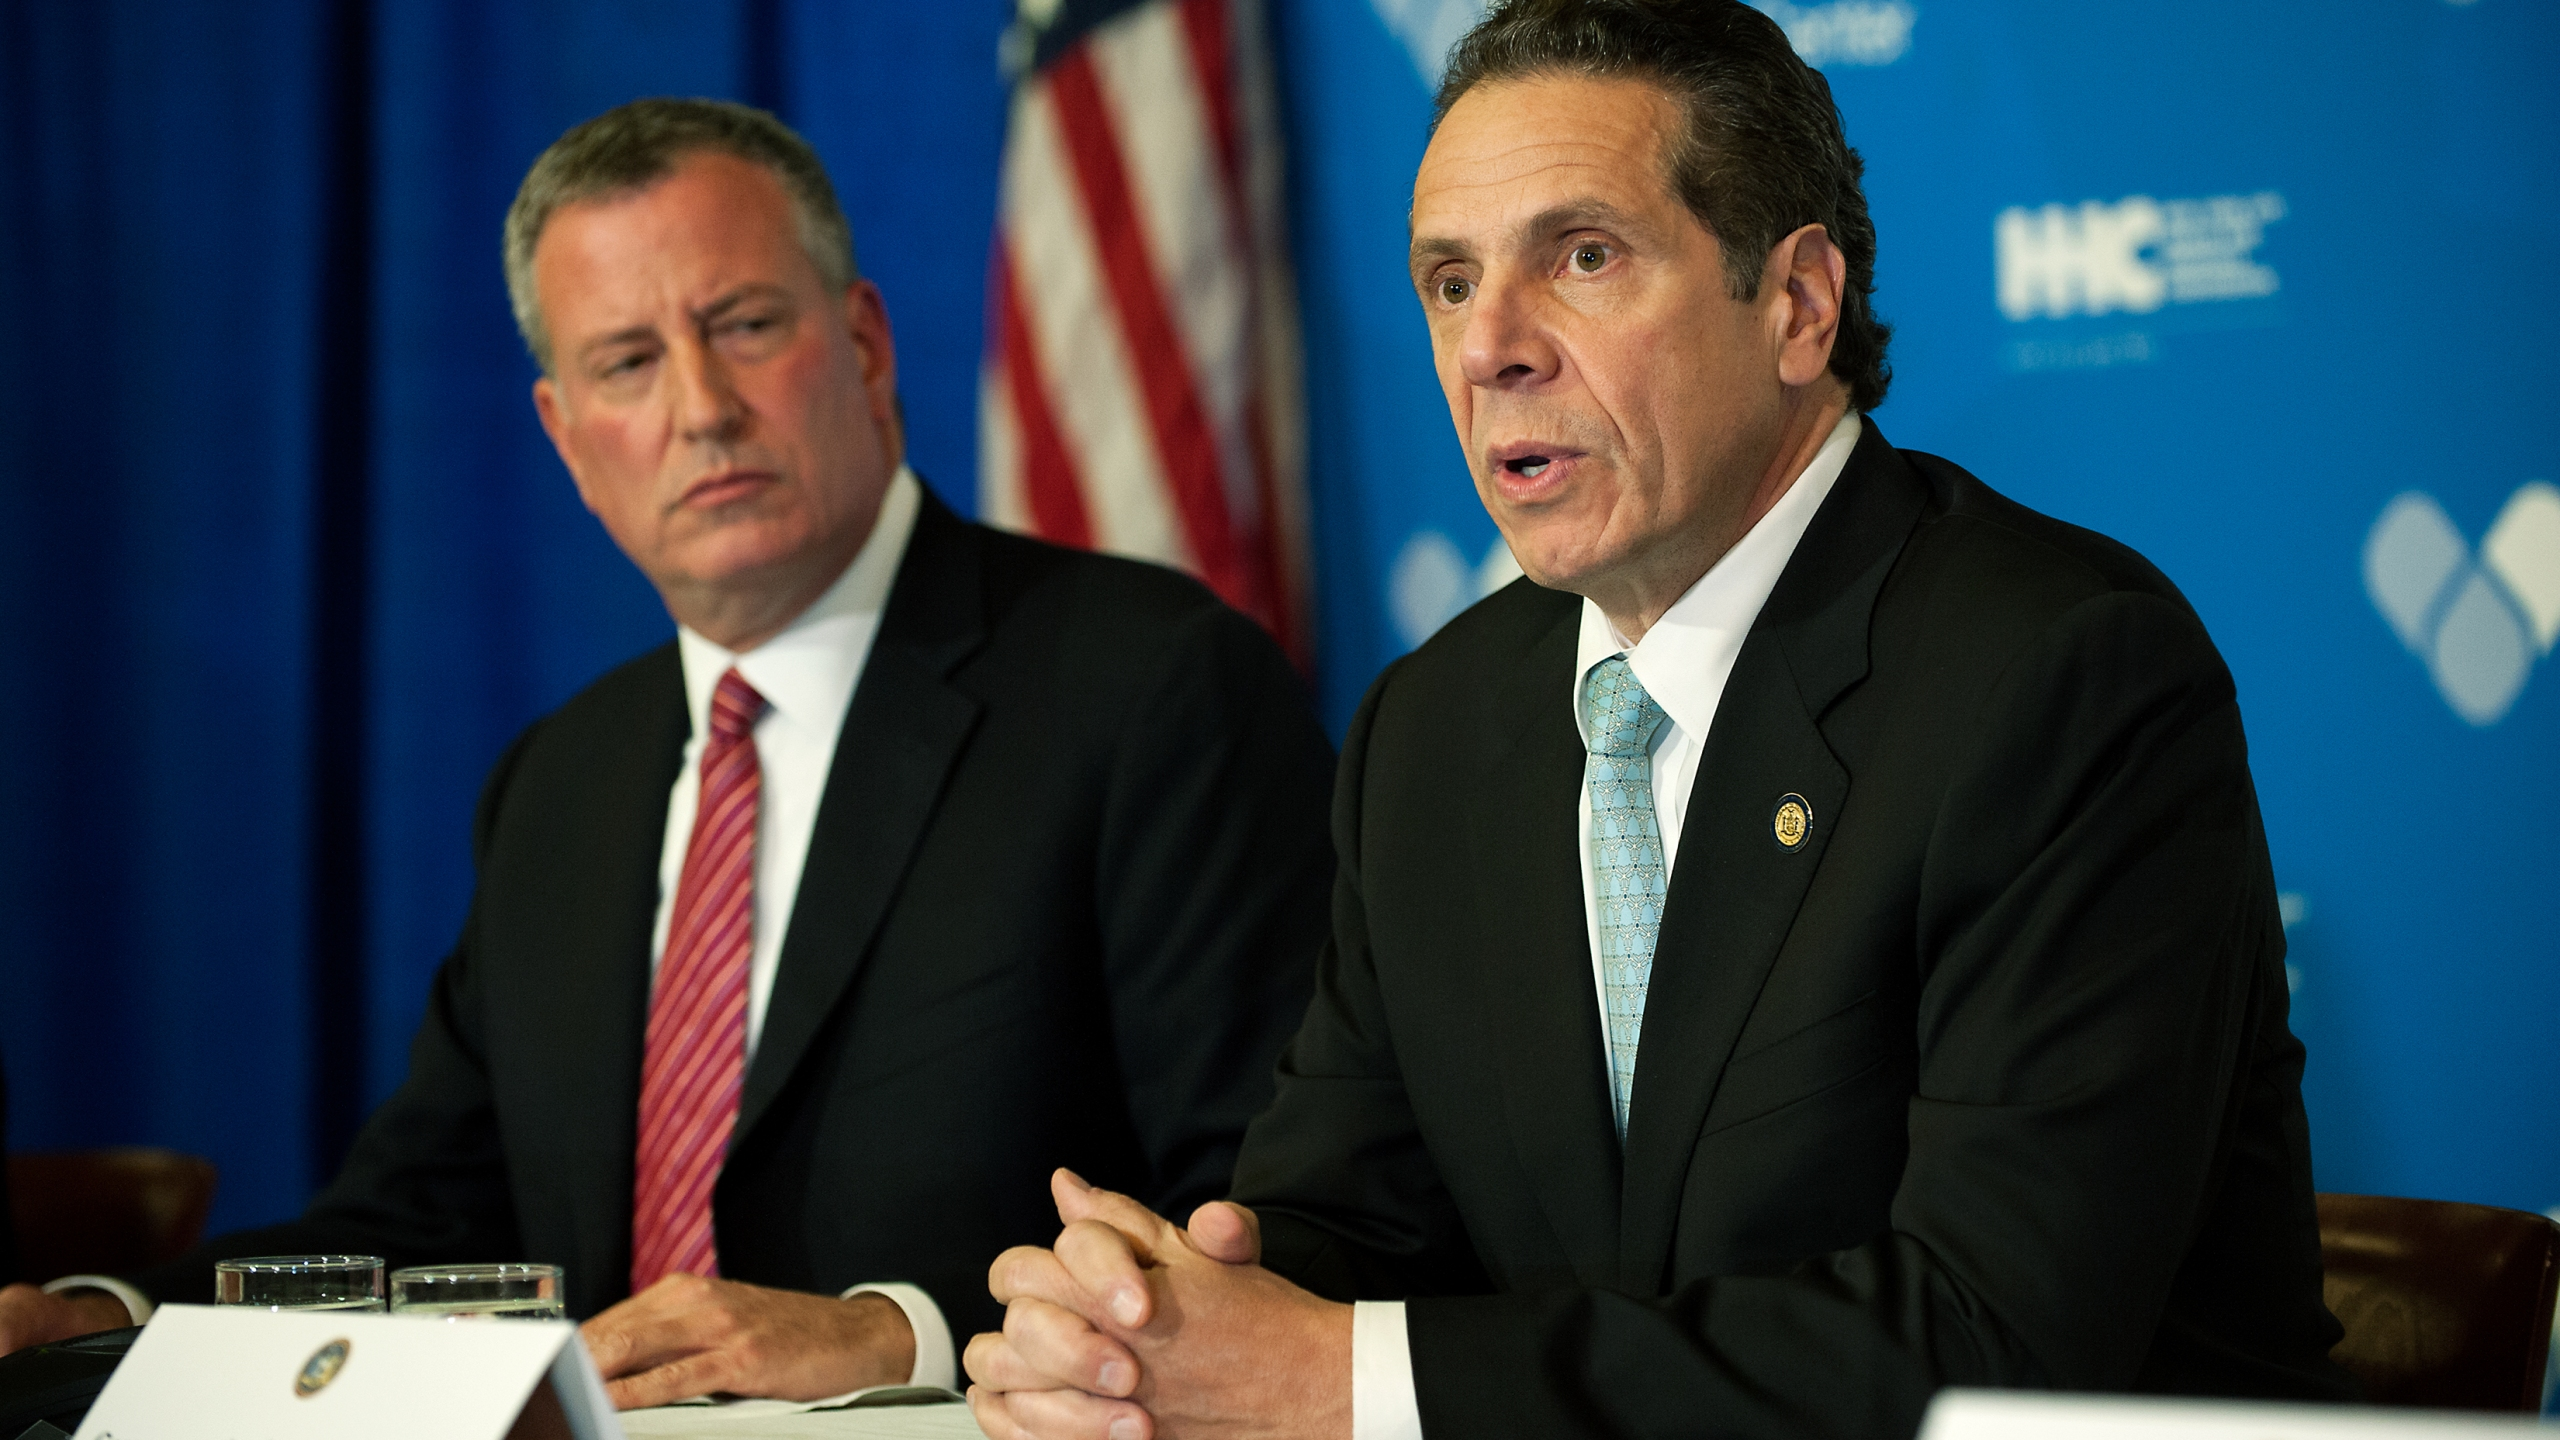 Mayor Bill de Blasio of New York City and Governor Andrew Cuomo of New York speak at a press conference in a file photo from October 23, 2014. (Bryan Thomas/Getty Images)